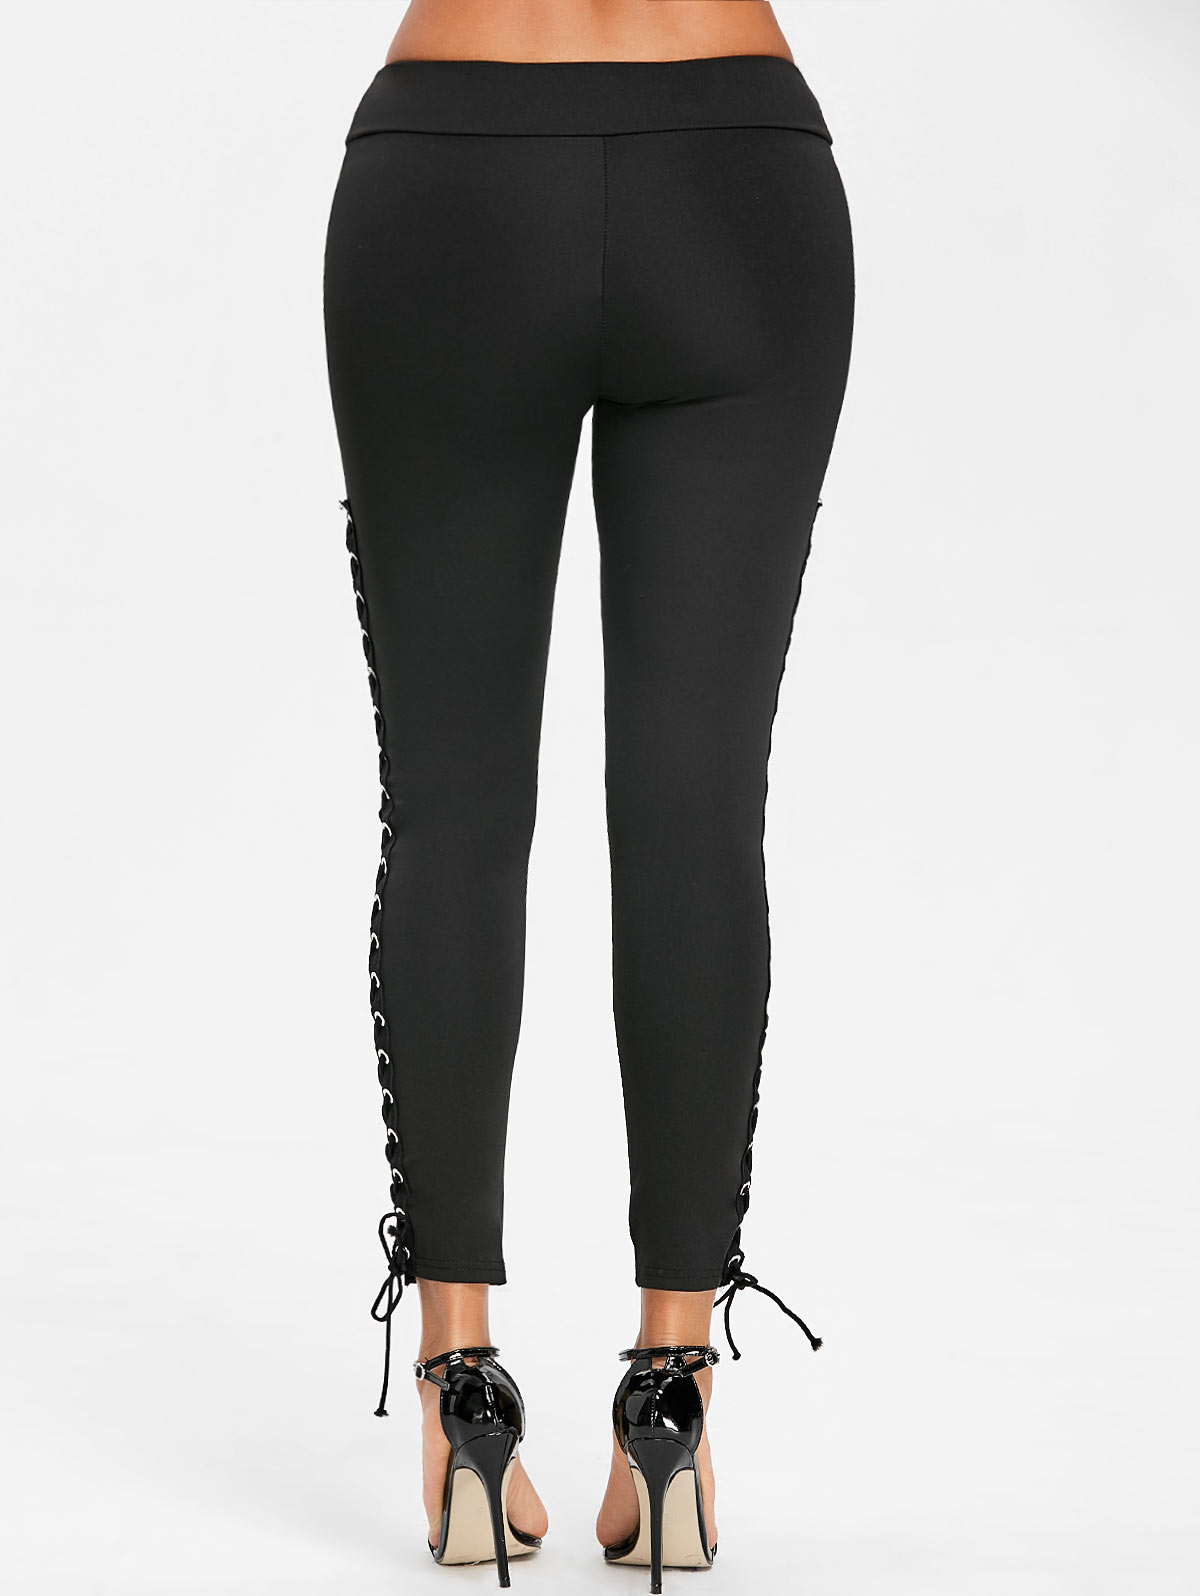 bdf42231837 Gamiss Women Casual Lace Up Leggings With Grommet Fashion Mid ...